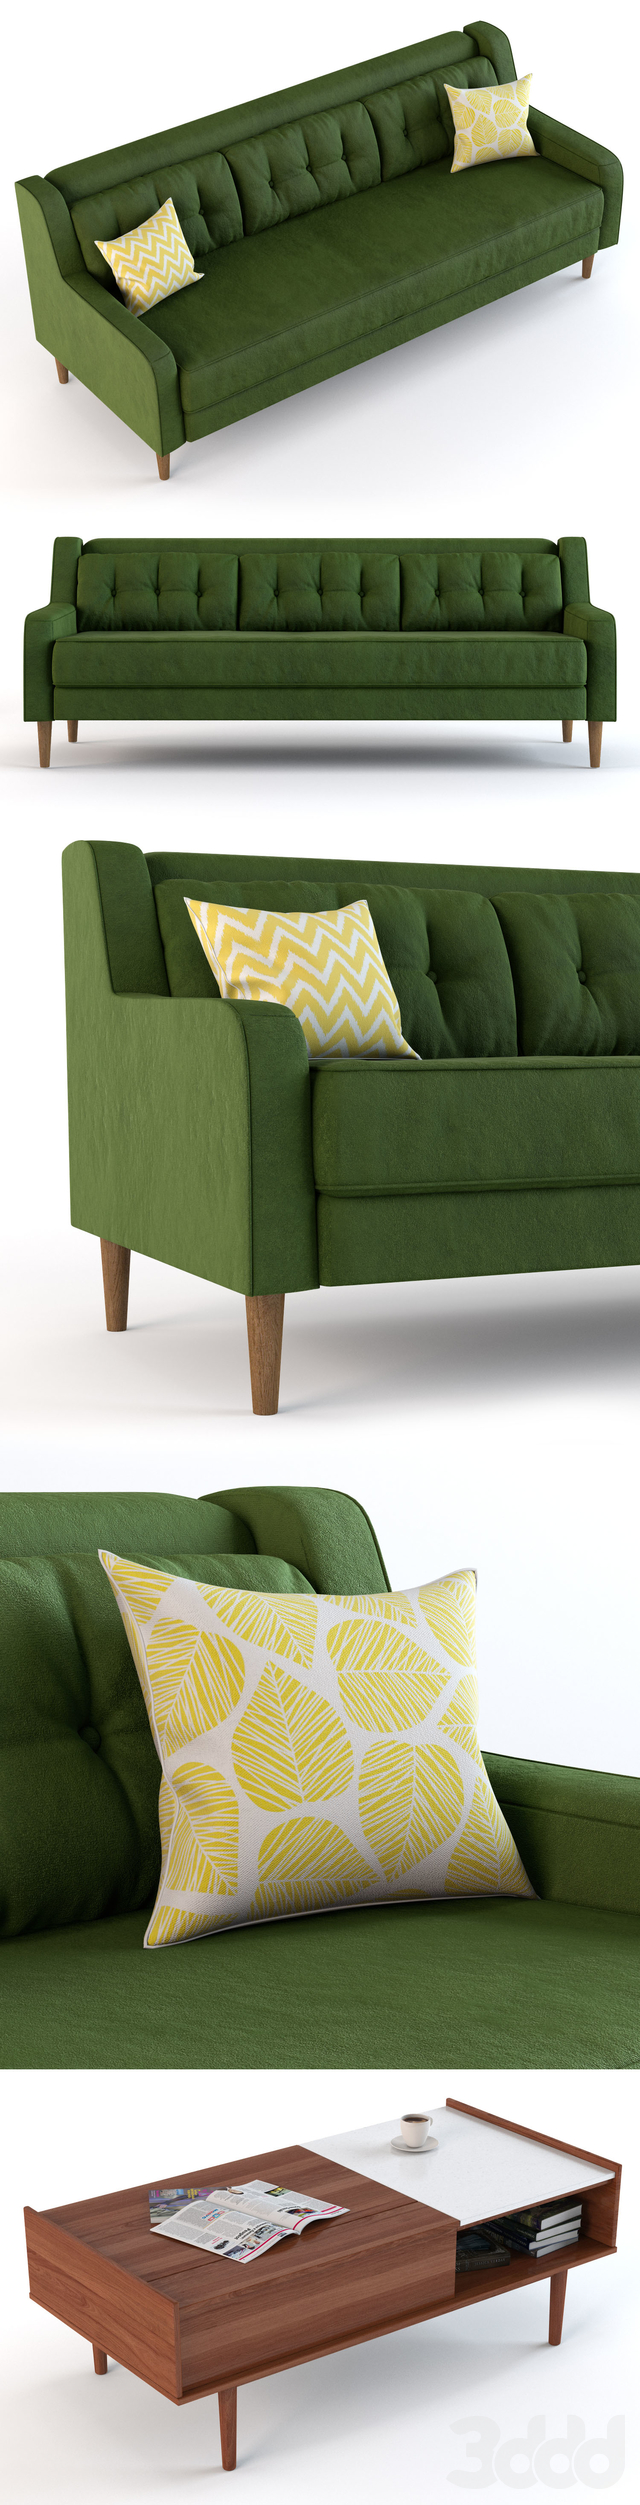 Crosby Mid Century Sofa and Pop-Up Storage Coffee Table